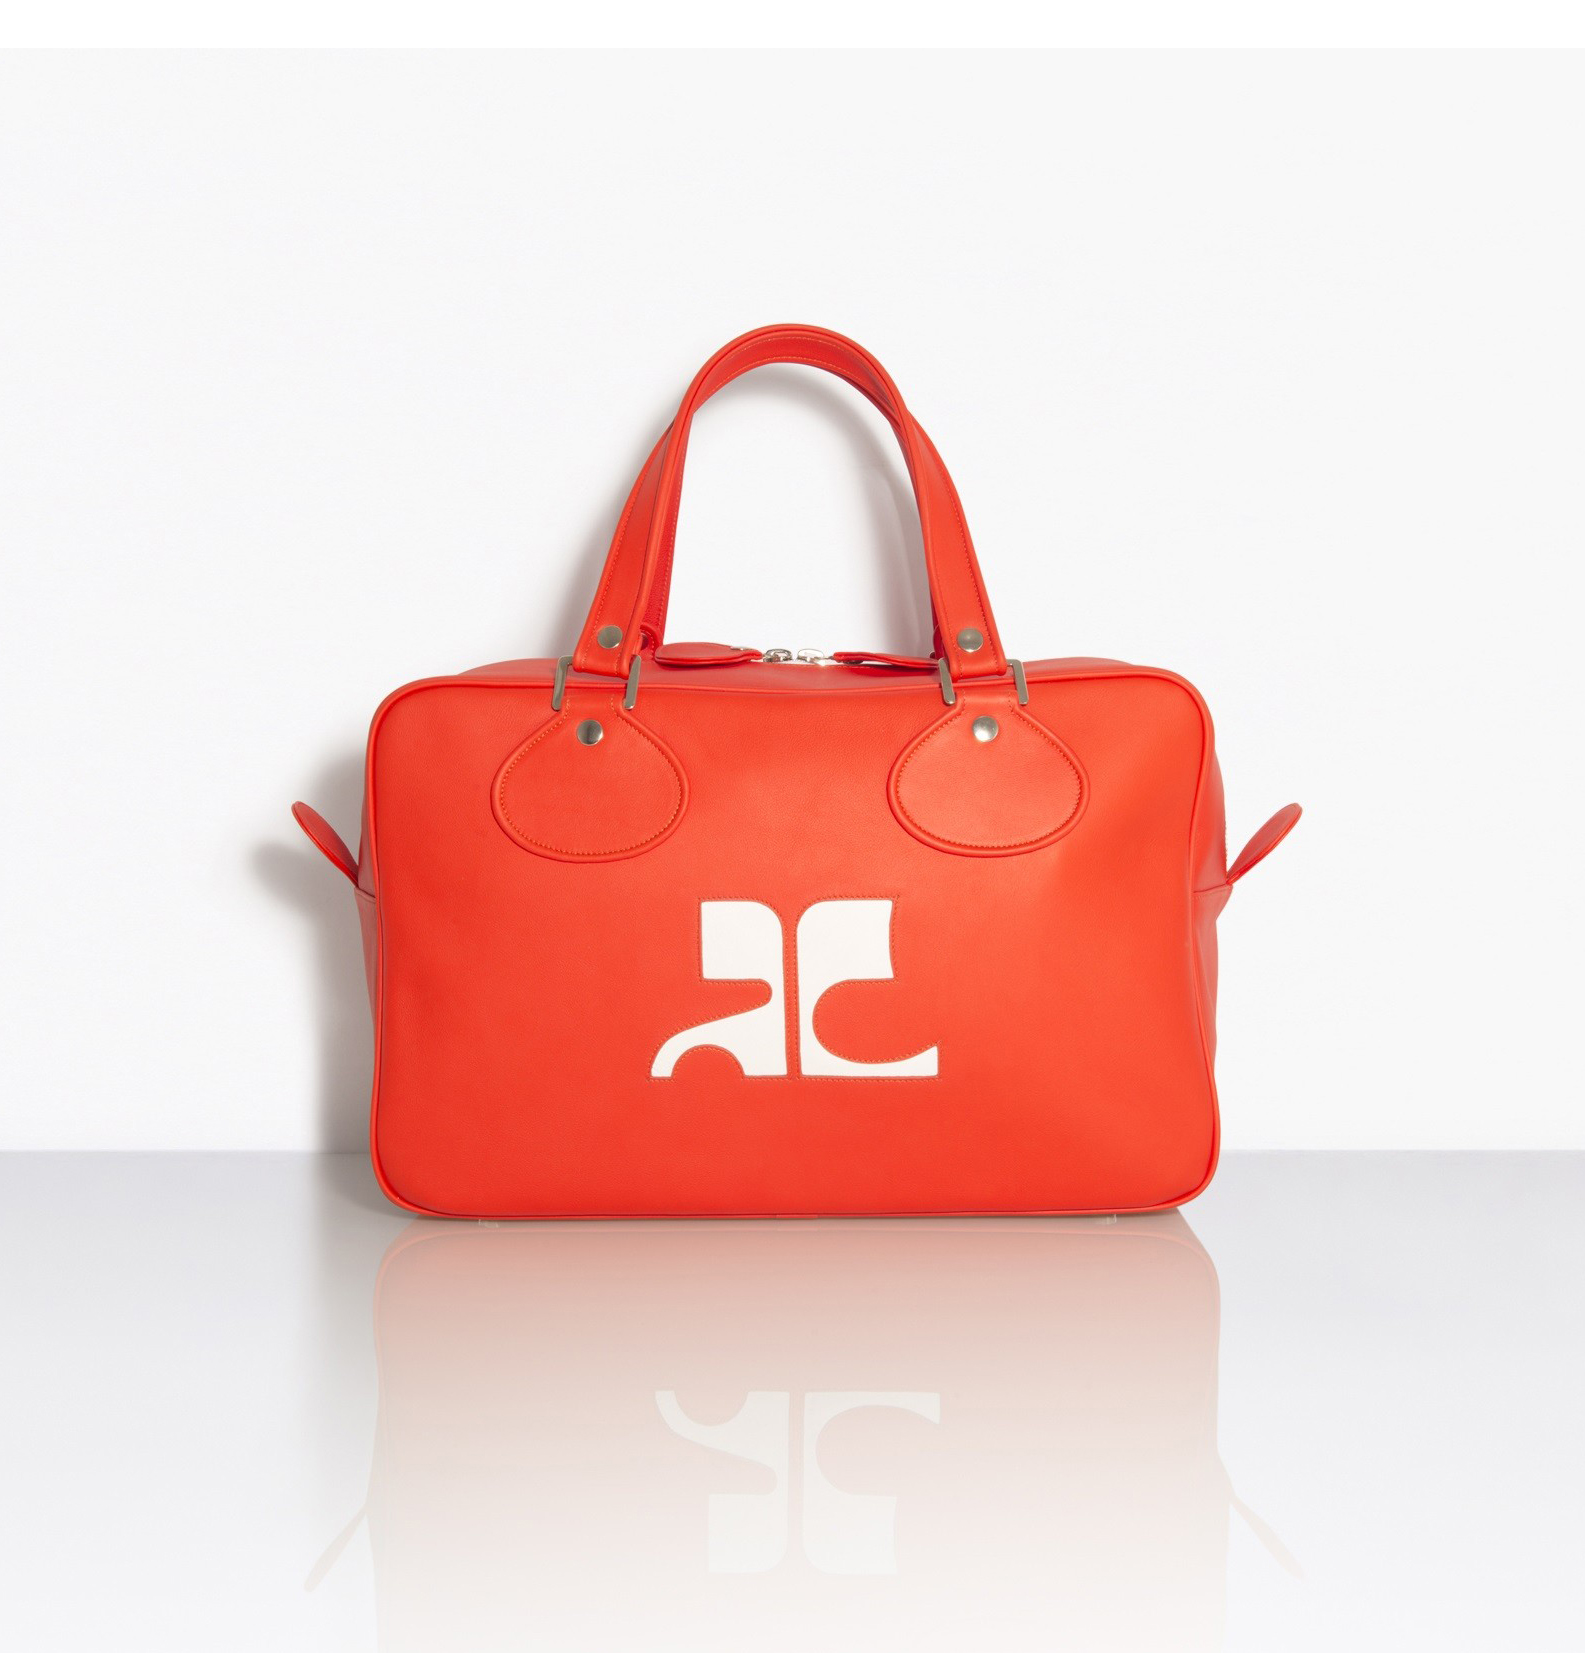 Sac Cabas Courreges